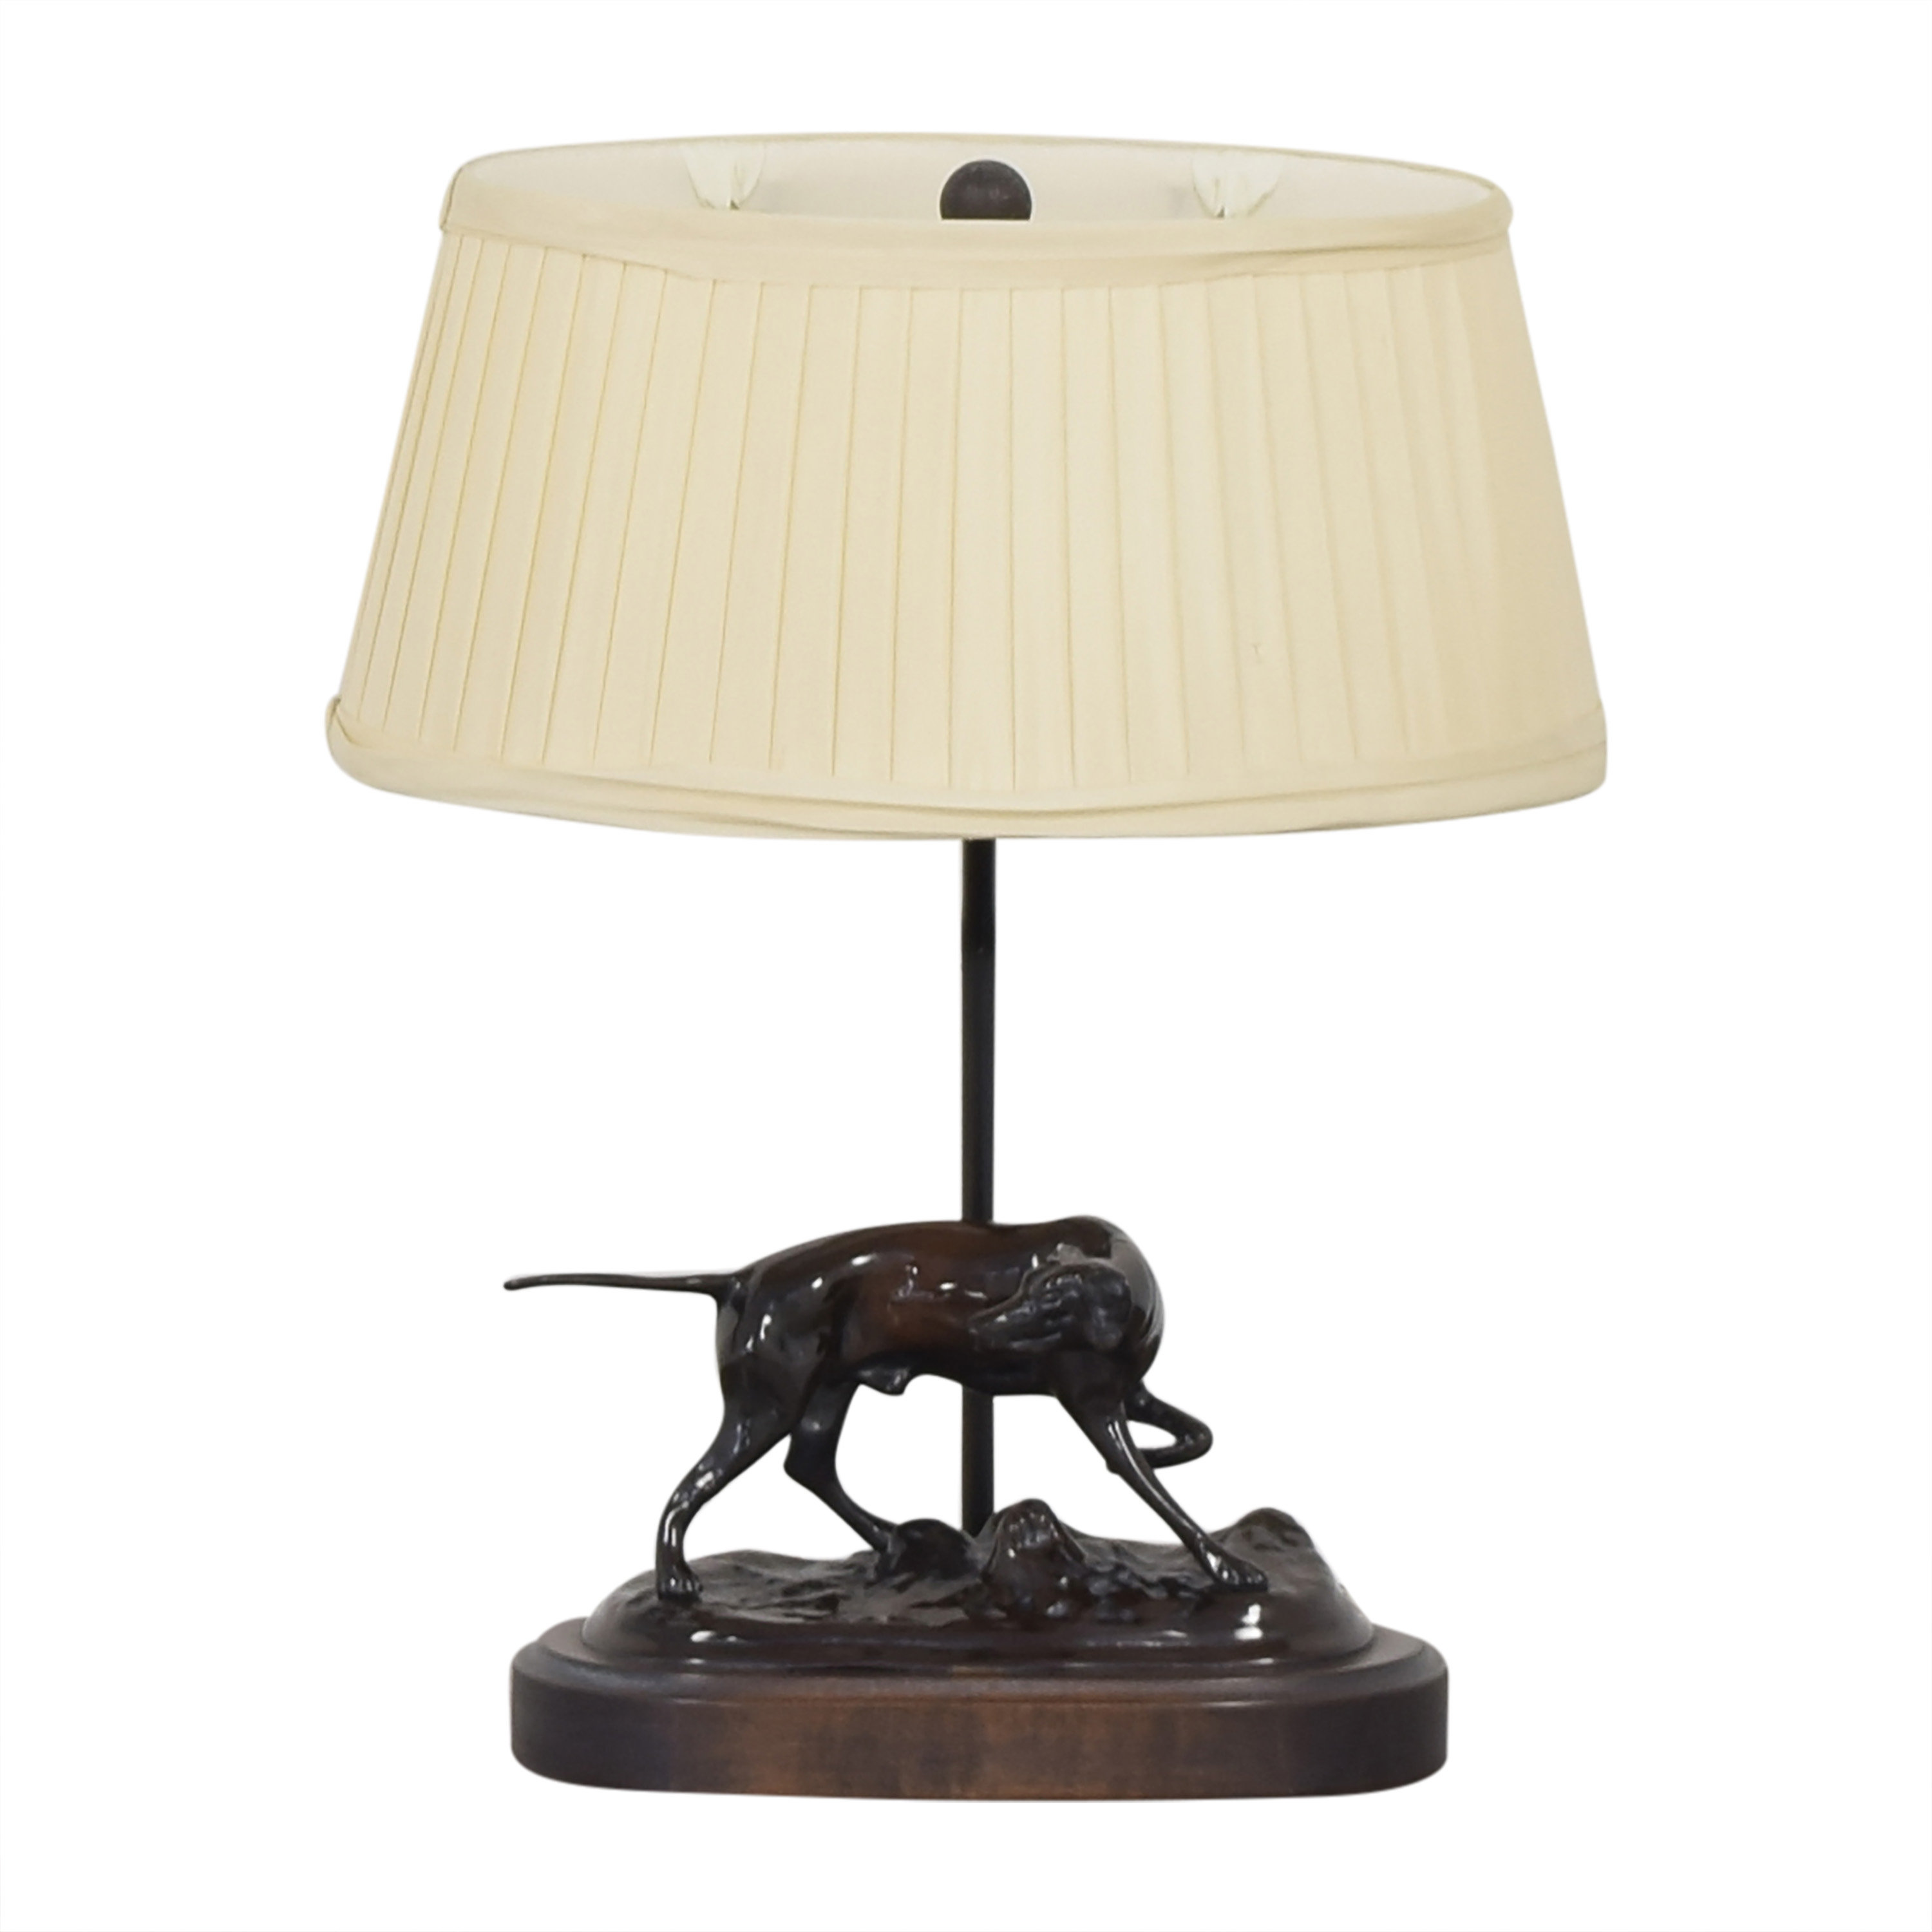 Frederick Cooper Frederick Cooper Dog Lamp discount